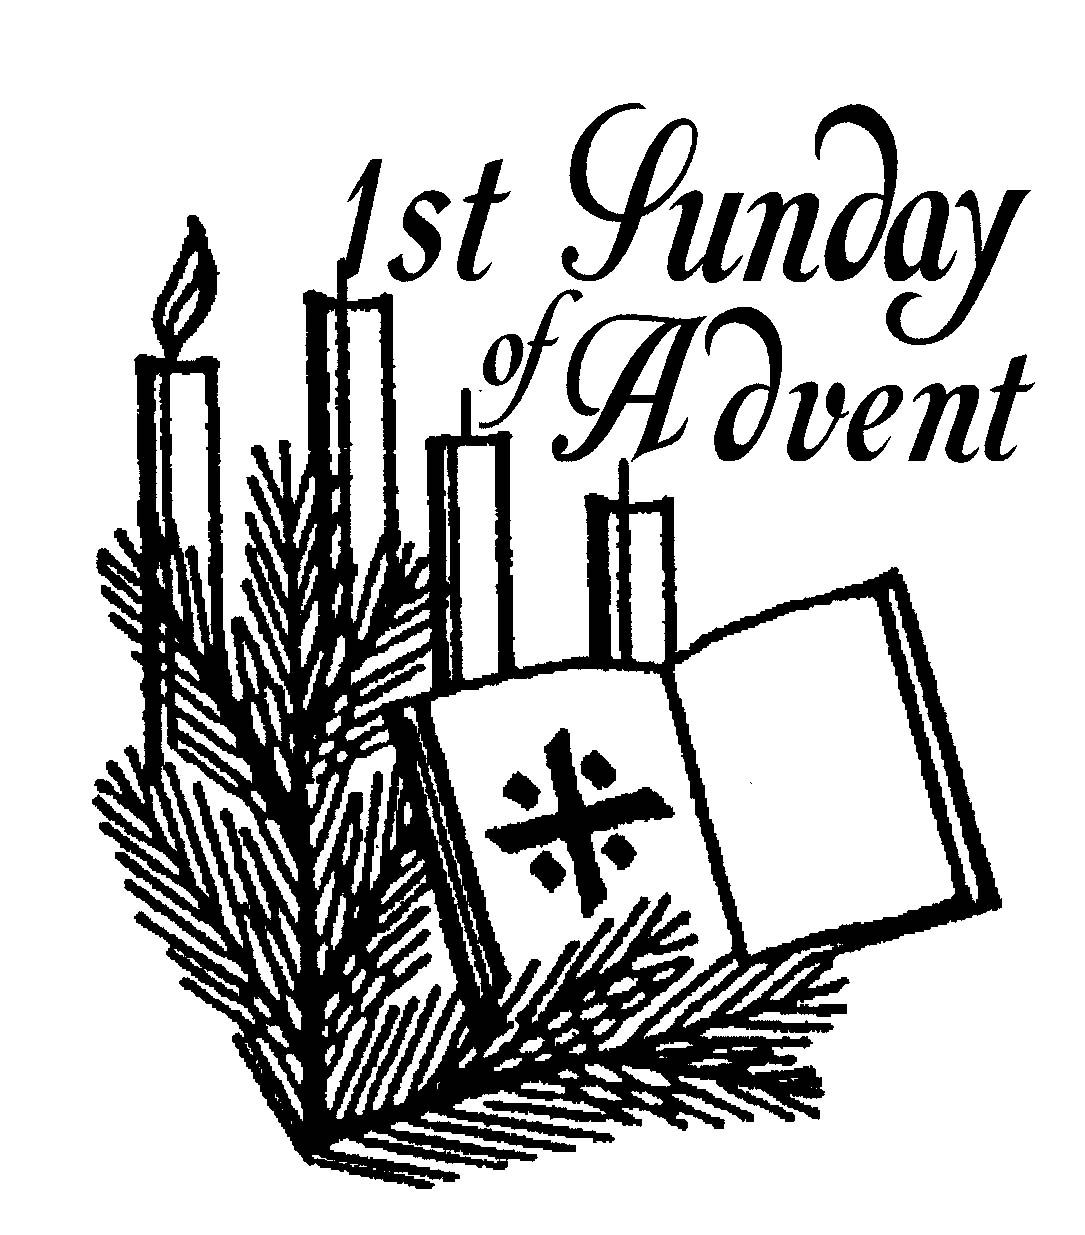 Free Advent Clipart, Download Free Clip Art, Free Clip Art.